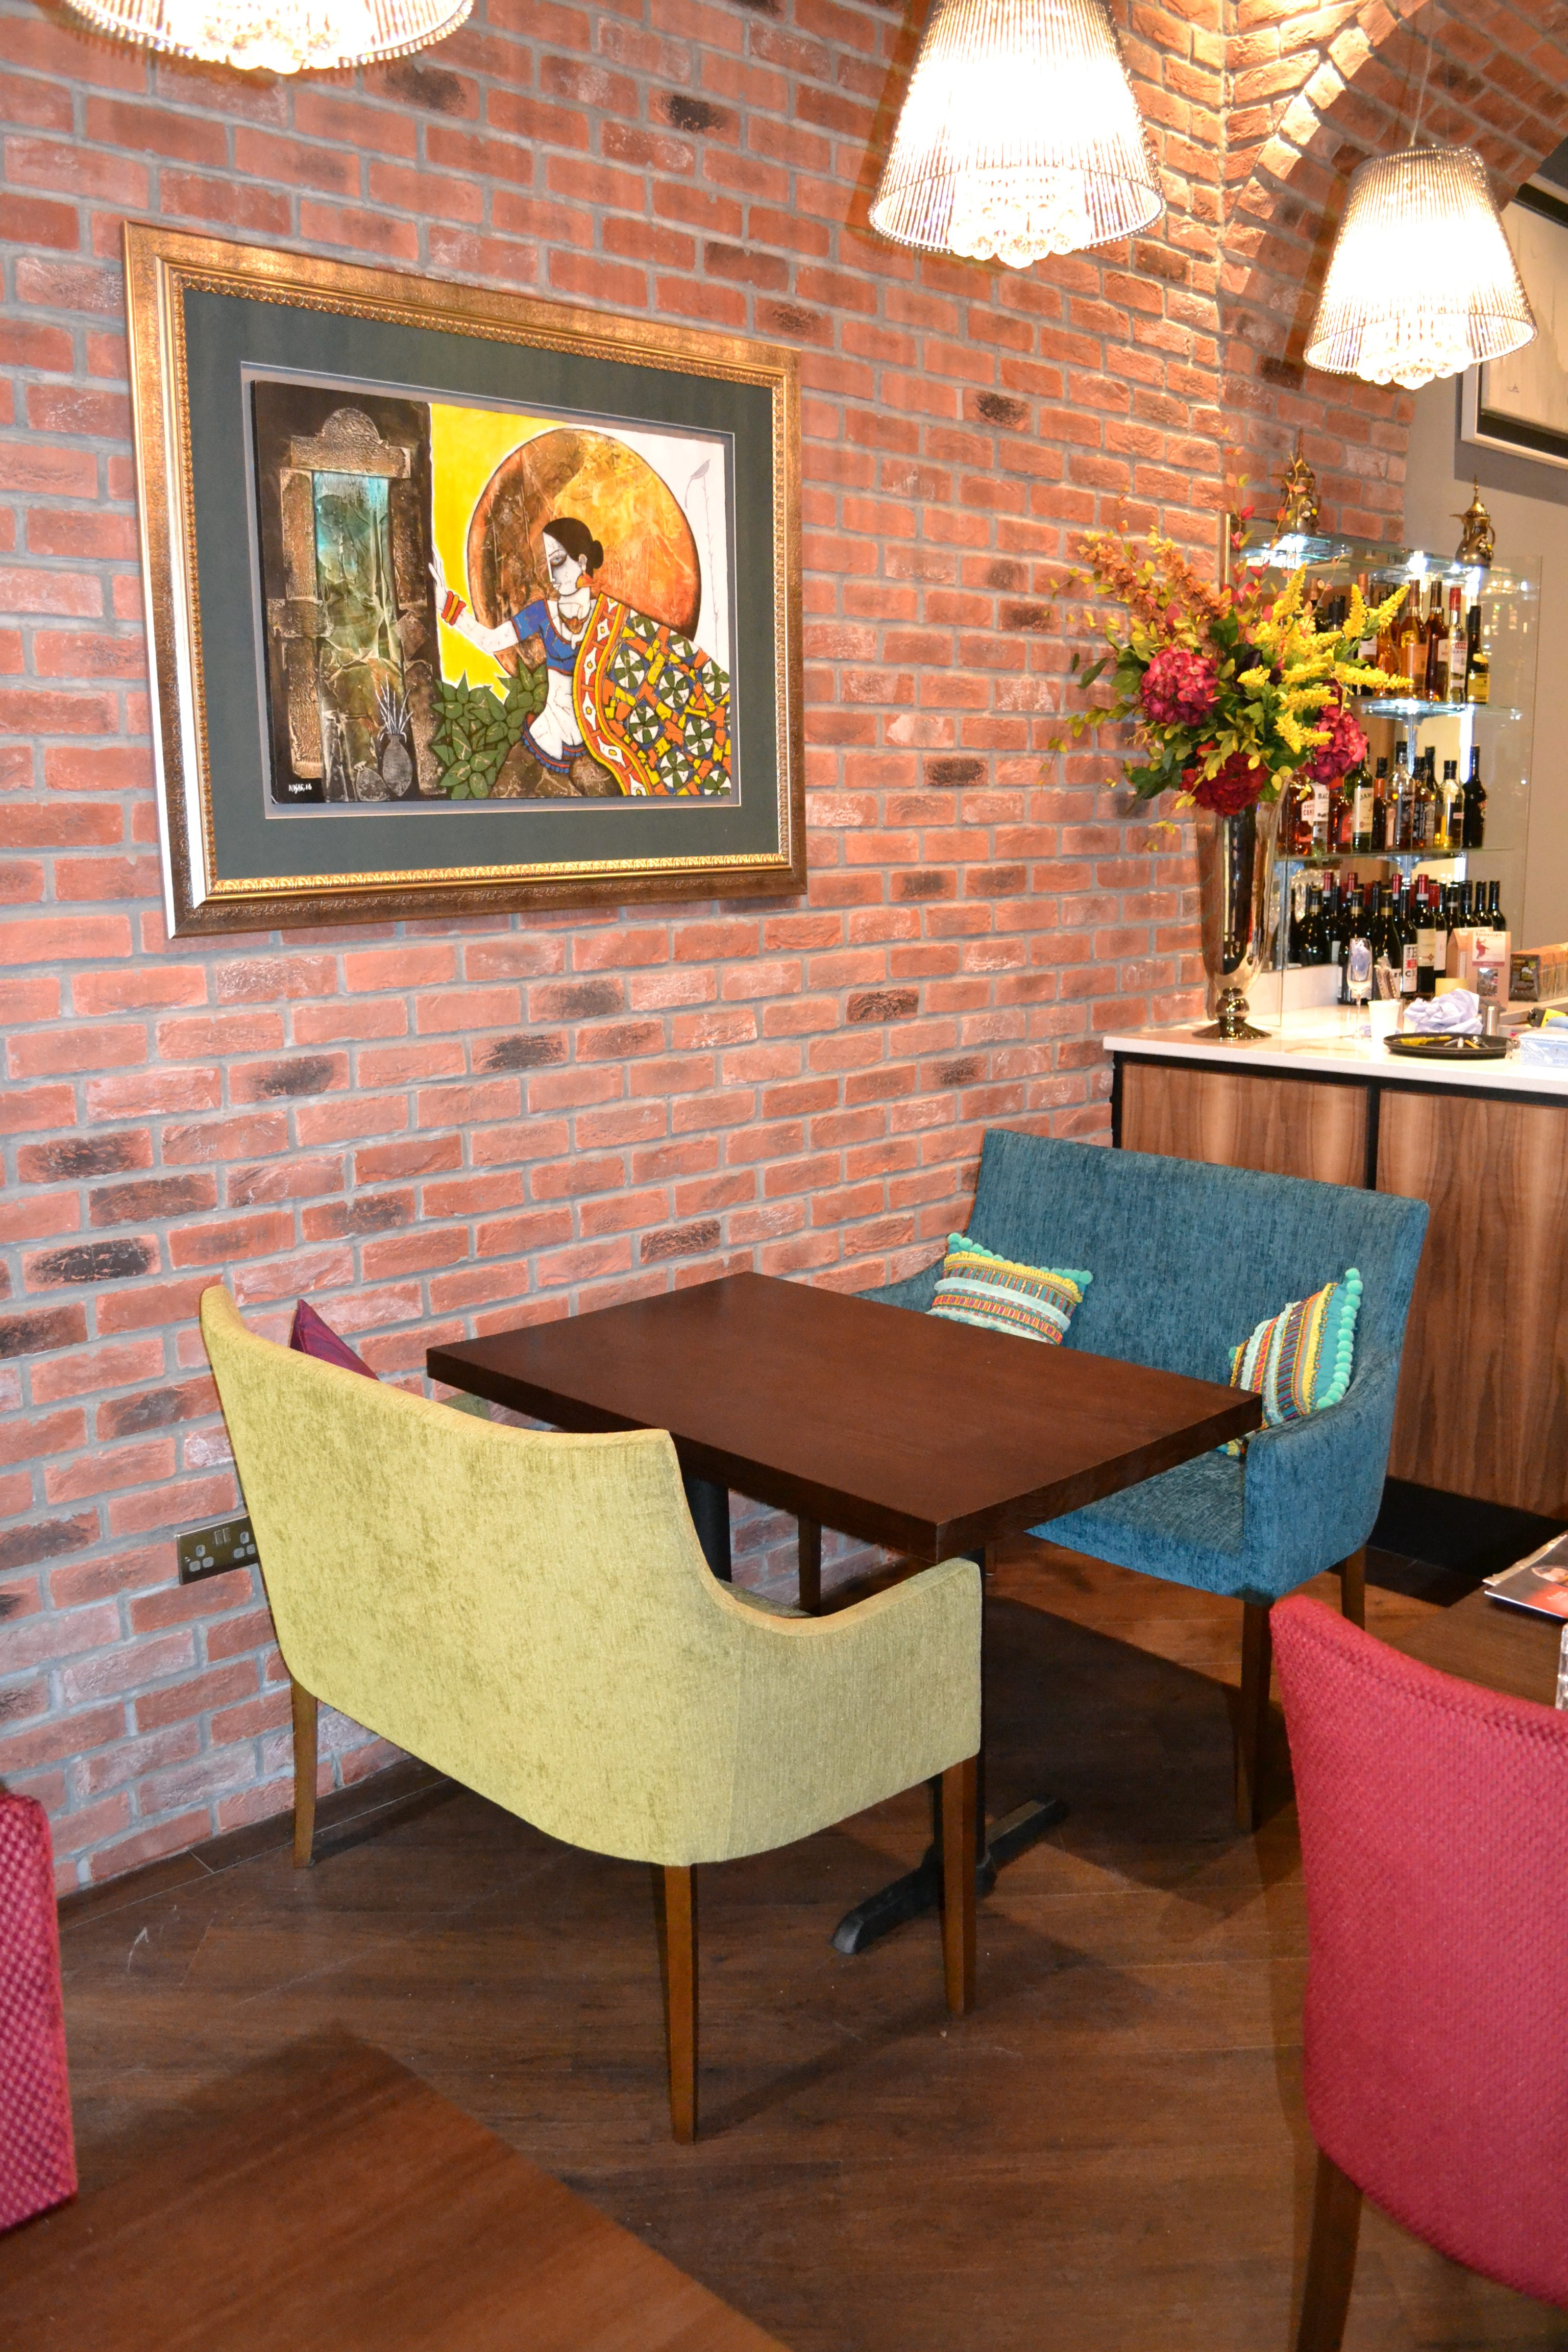 Simla restaurant reopens on newcastle quayside after